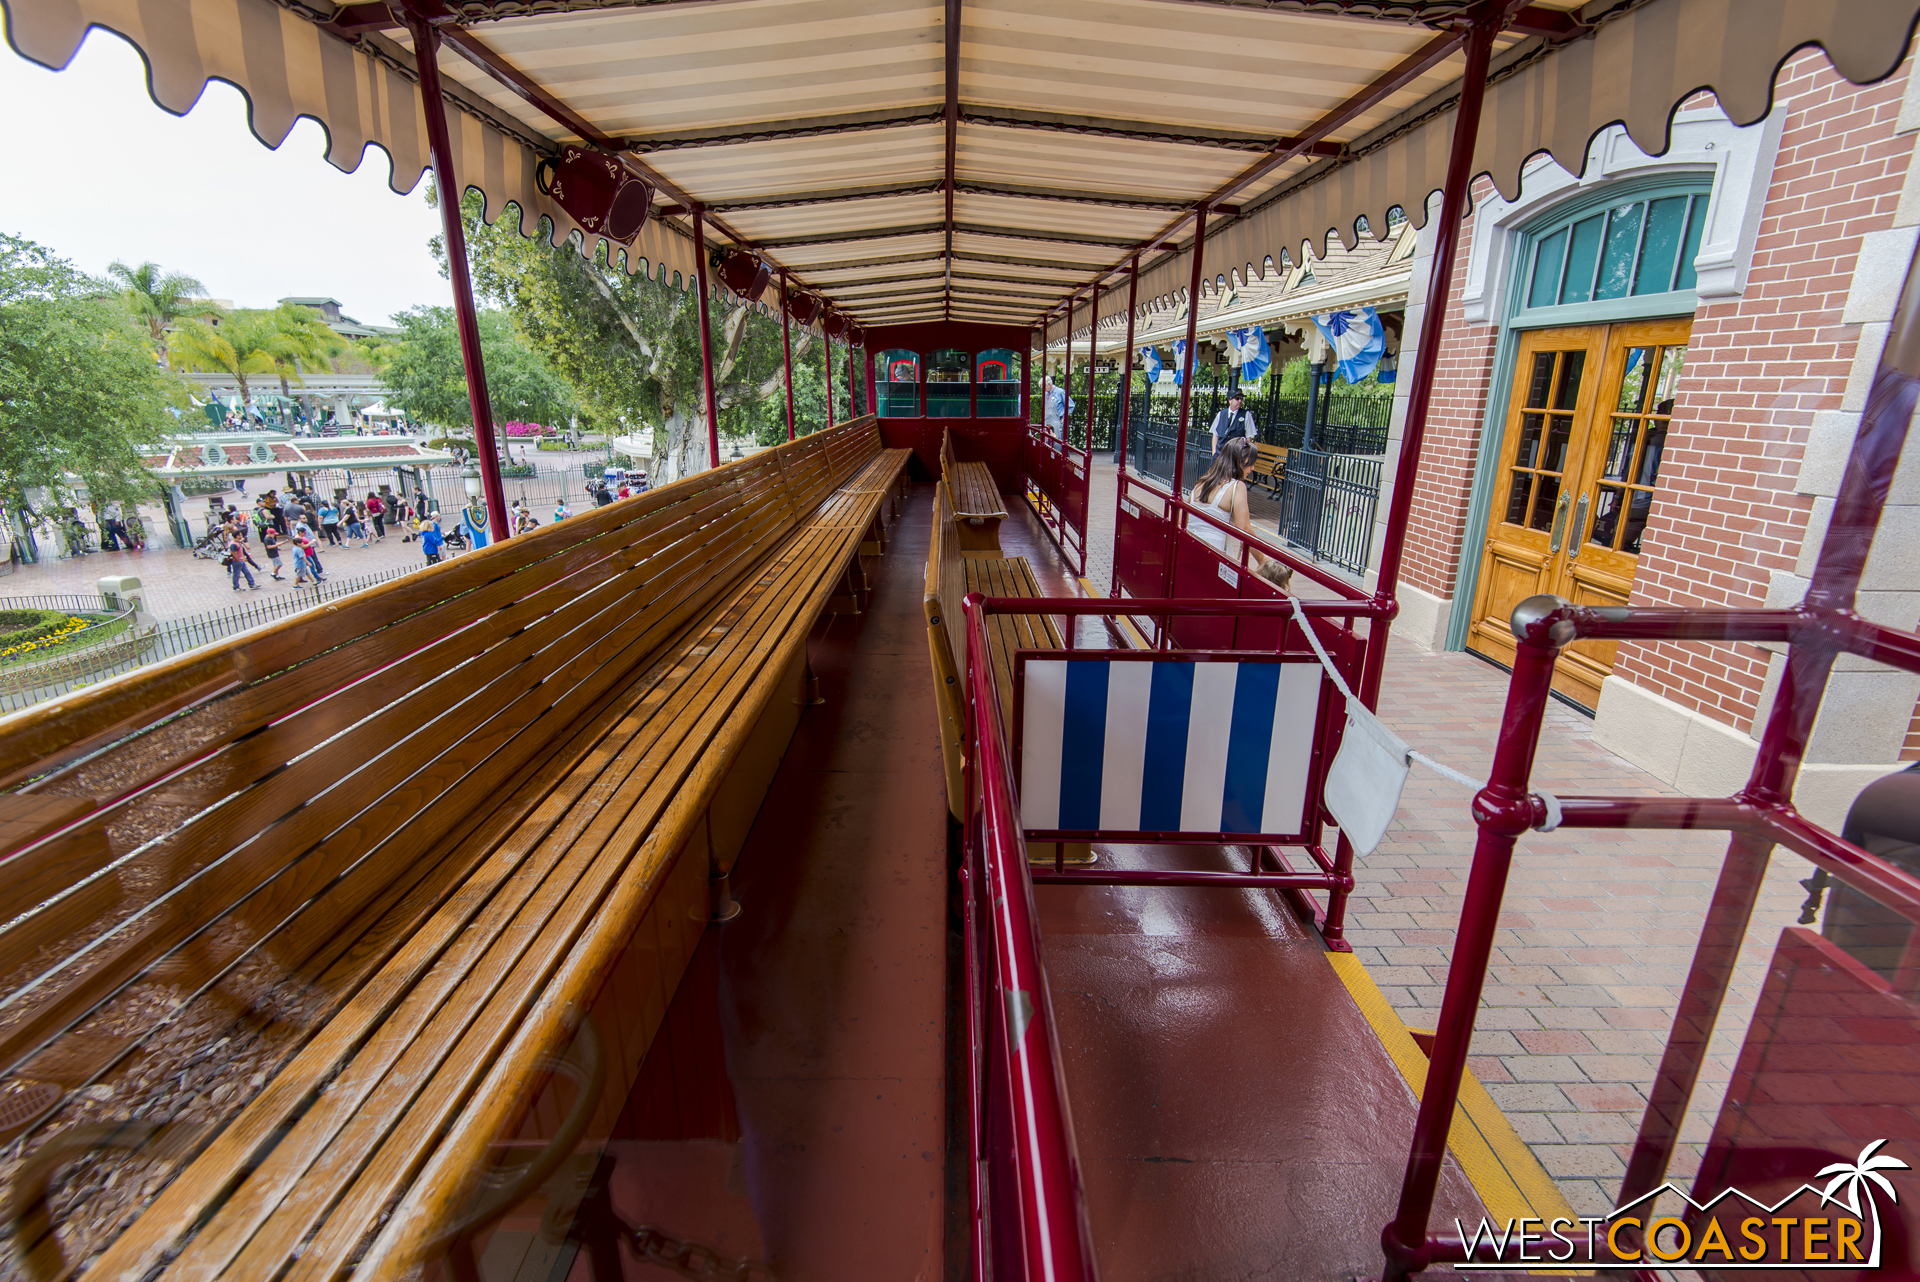 The view down a carriage.